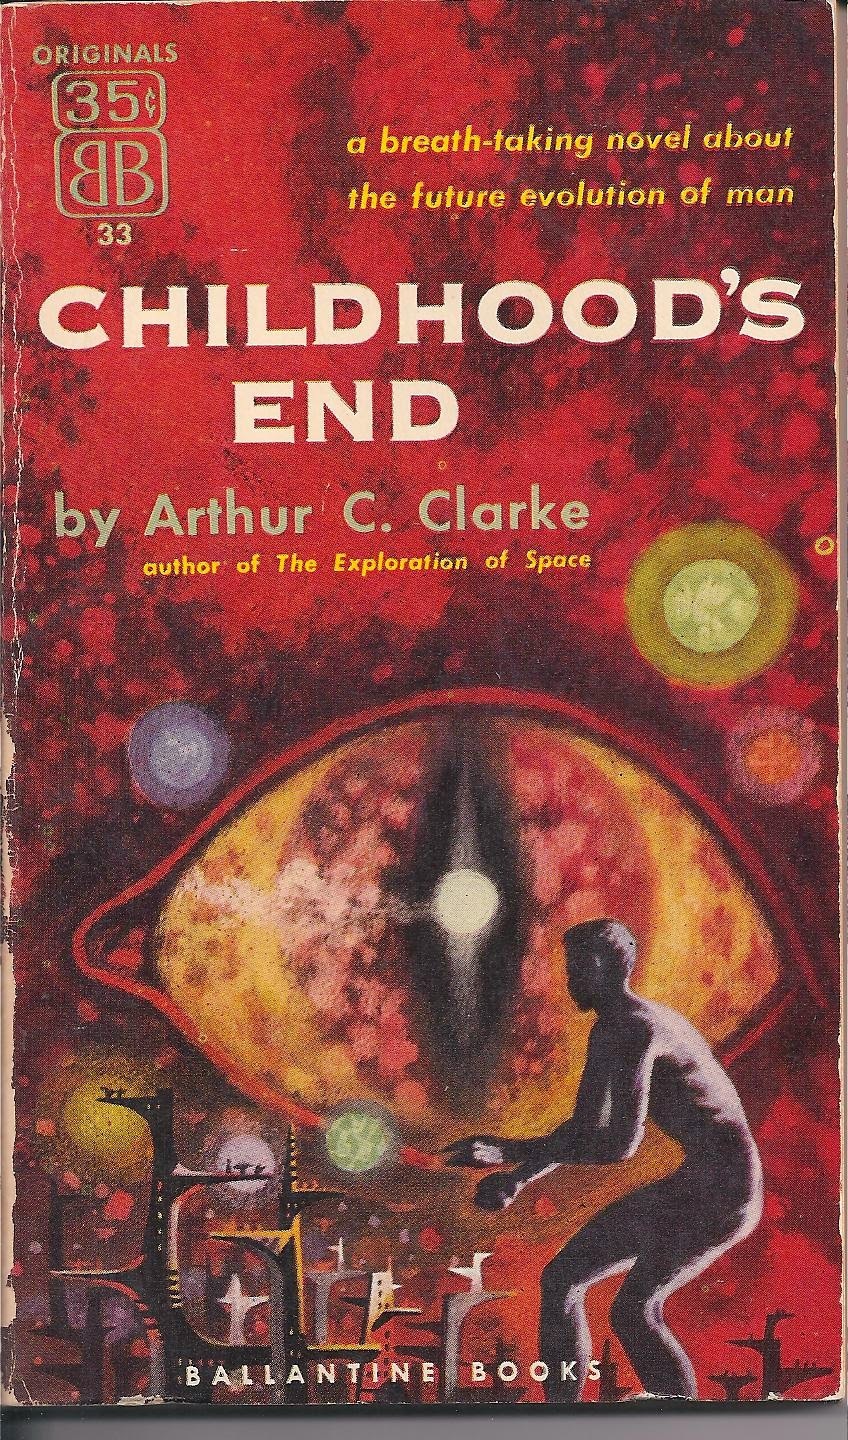 arthur c clarke short stories pdf